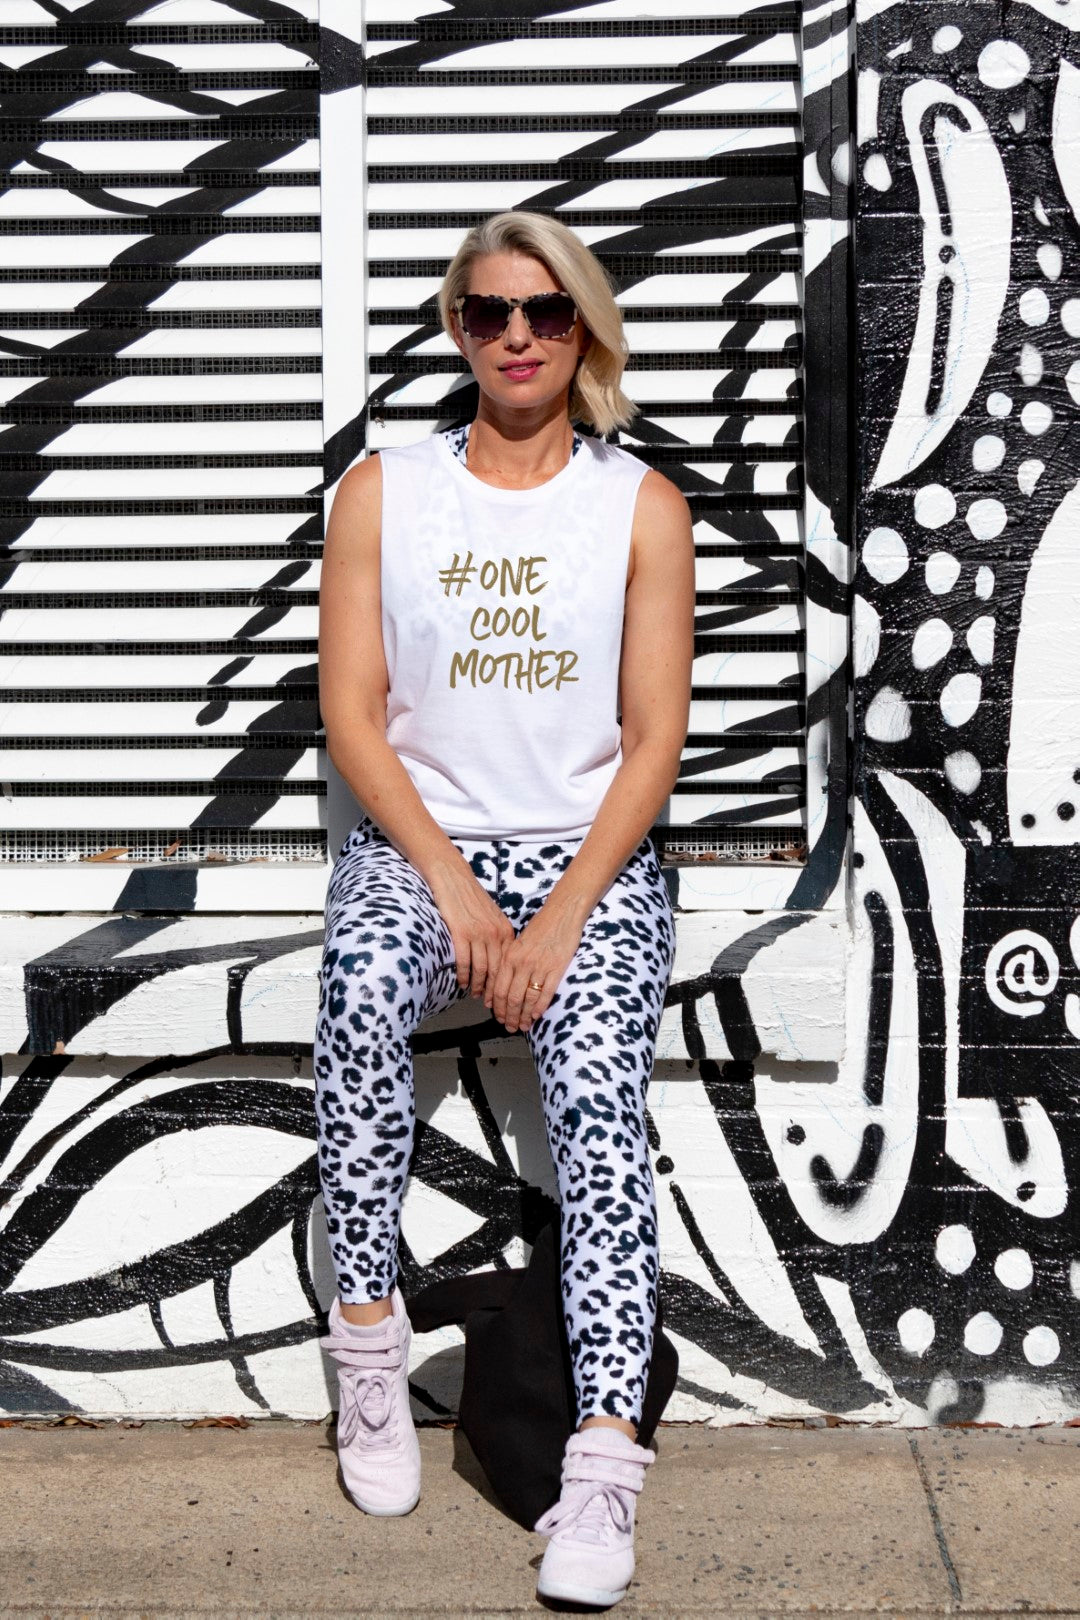 One Cool Mother Muscle Tee